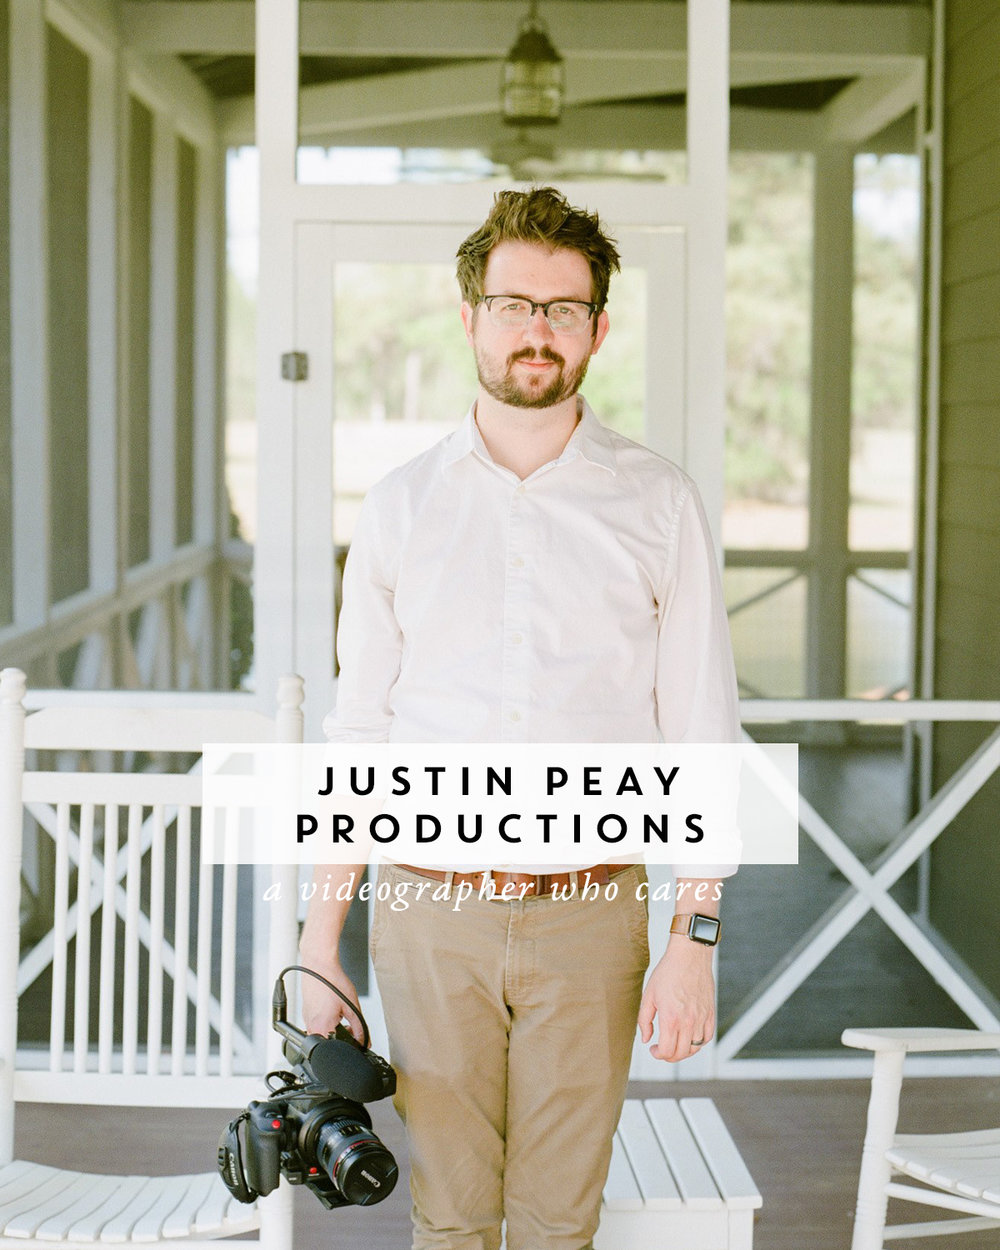 justin-peay-productions-main-image-blog-post.jpg